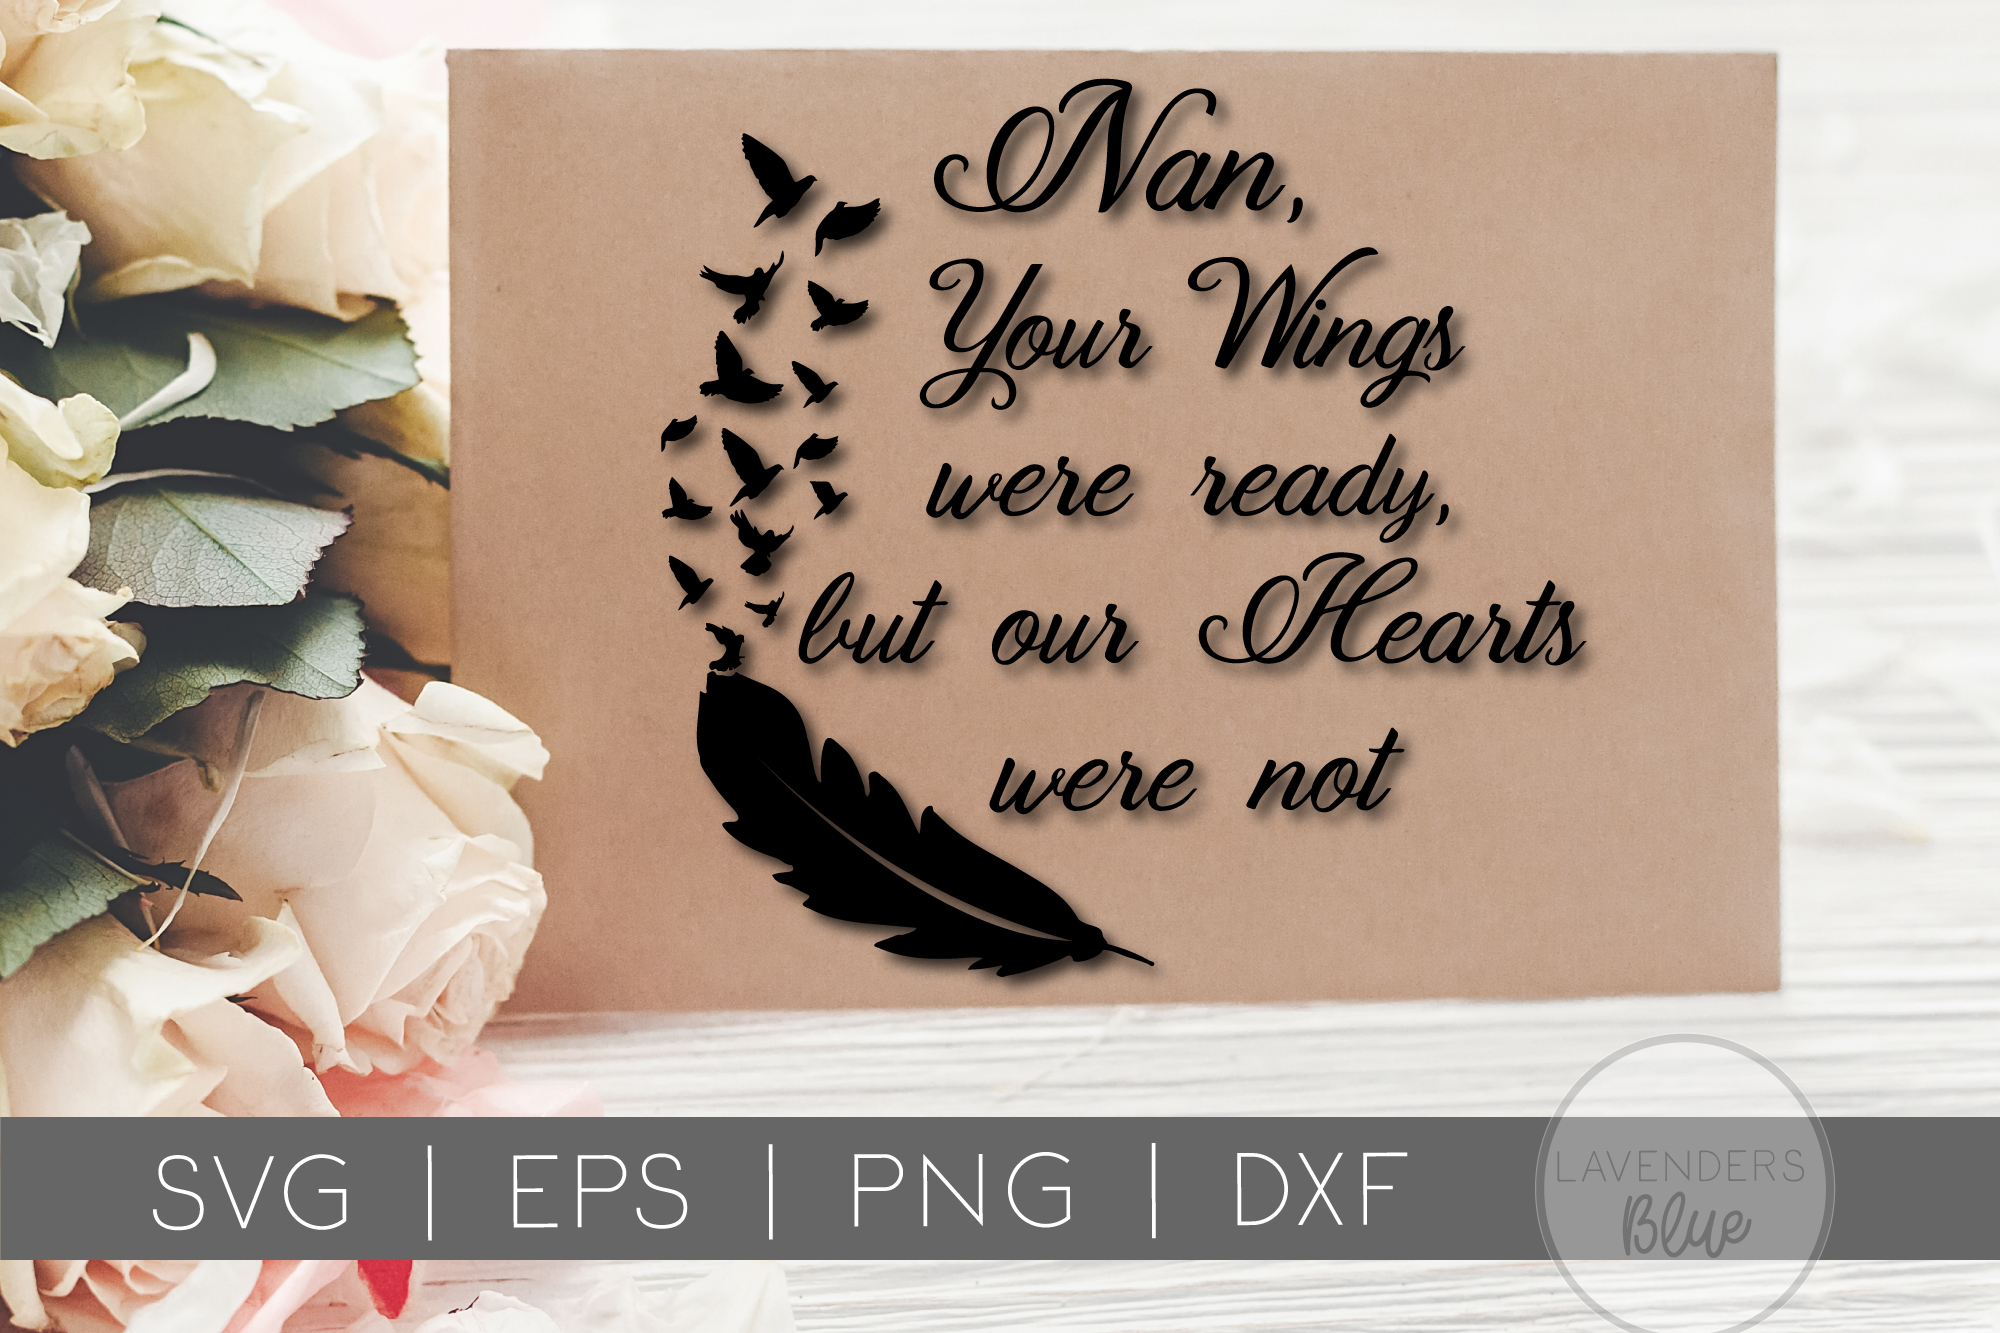 Nan Your Wings Were Ready, But Our Hearts Were Not | SVG Quo example image 1